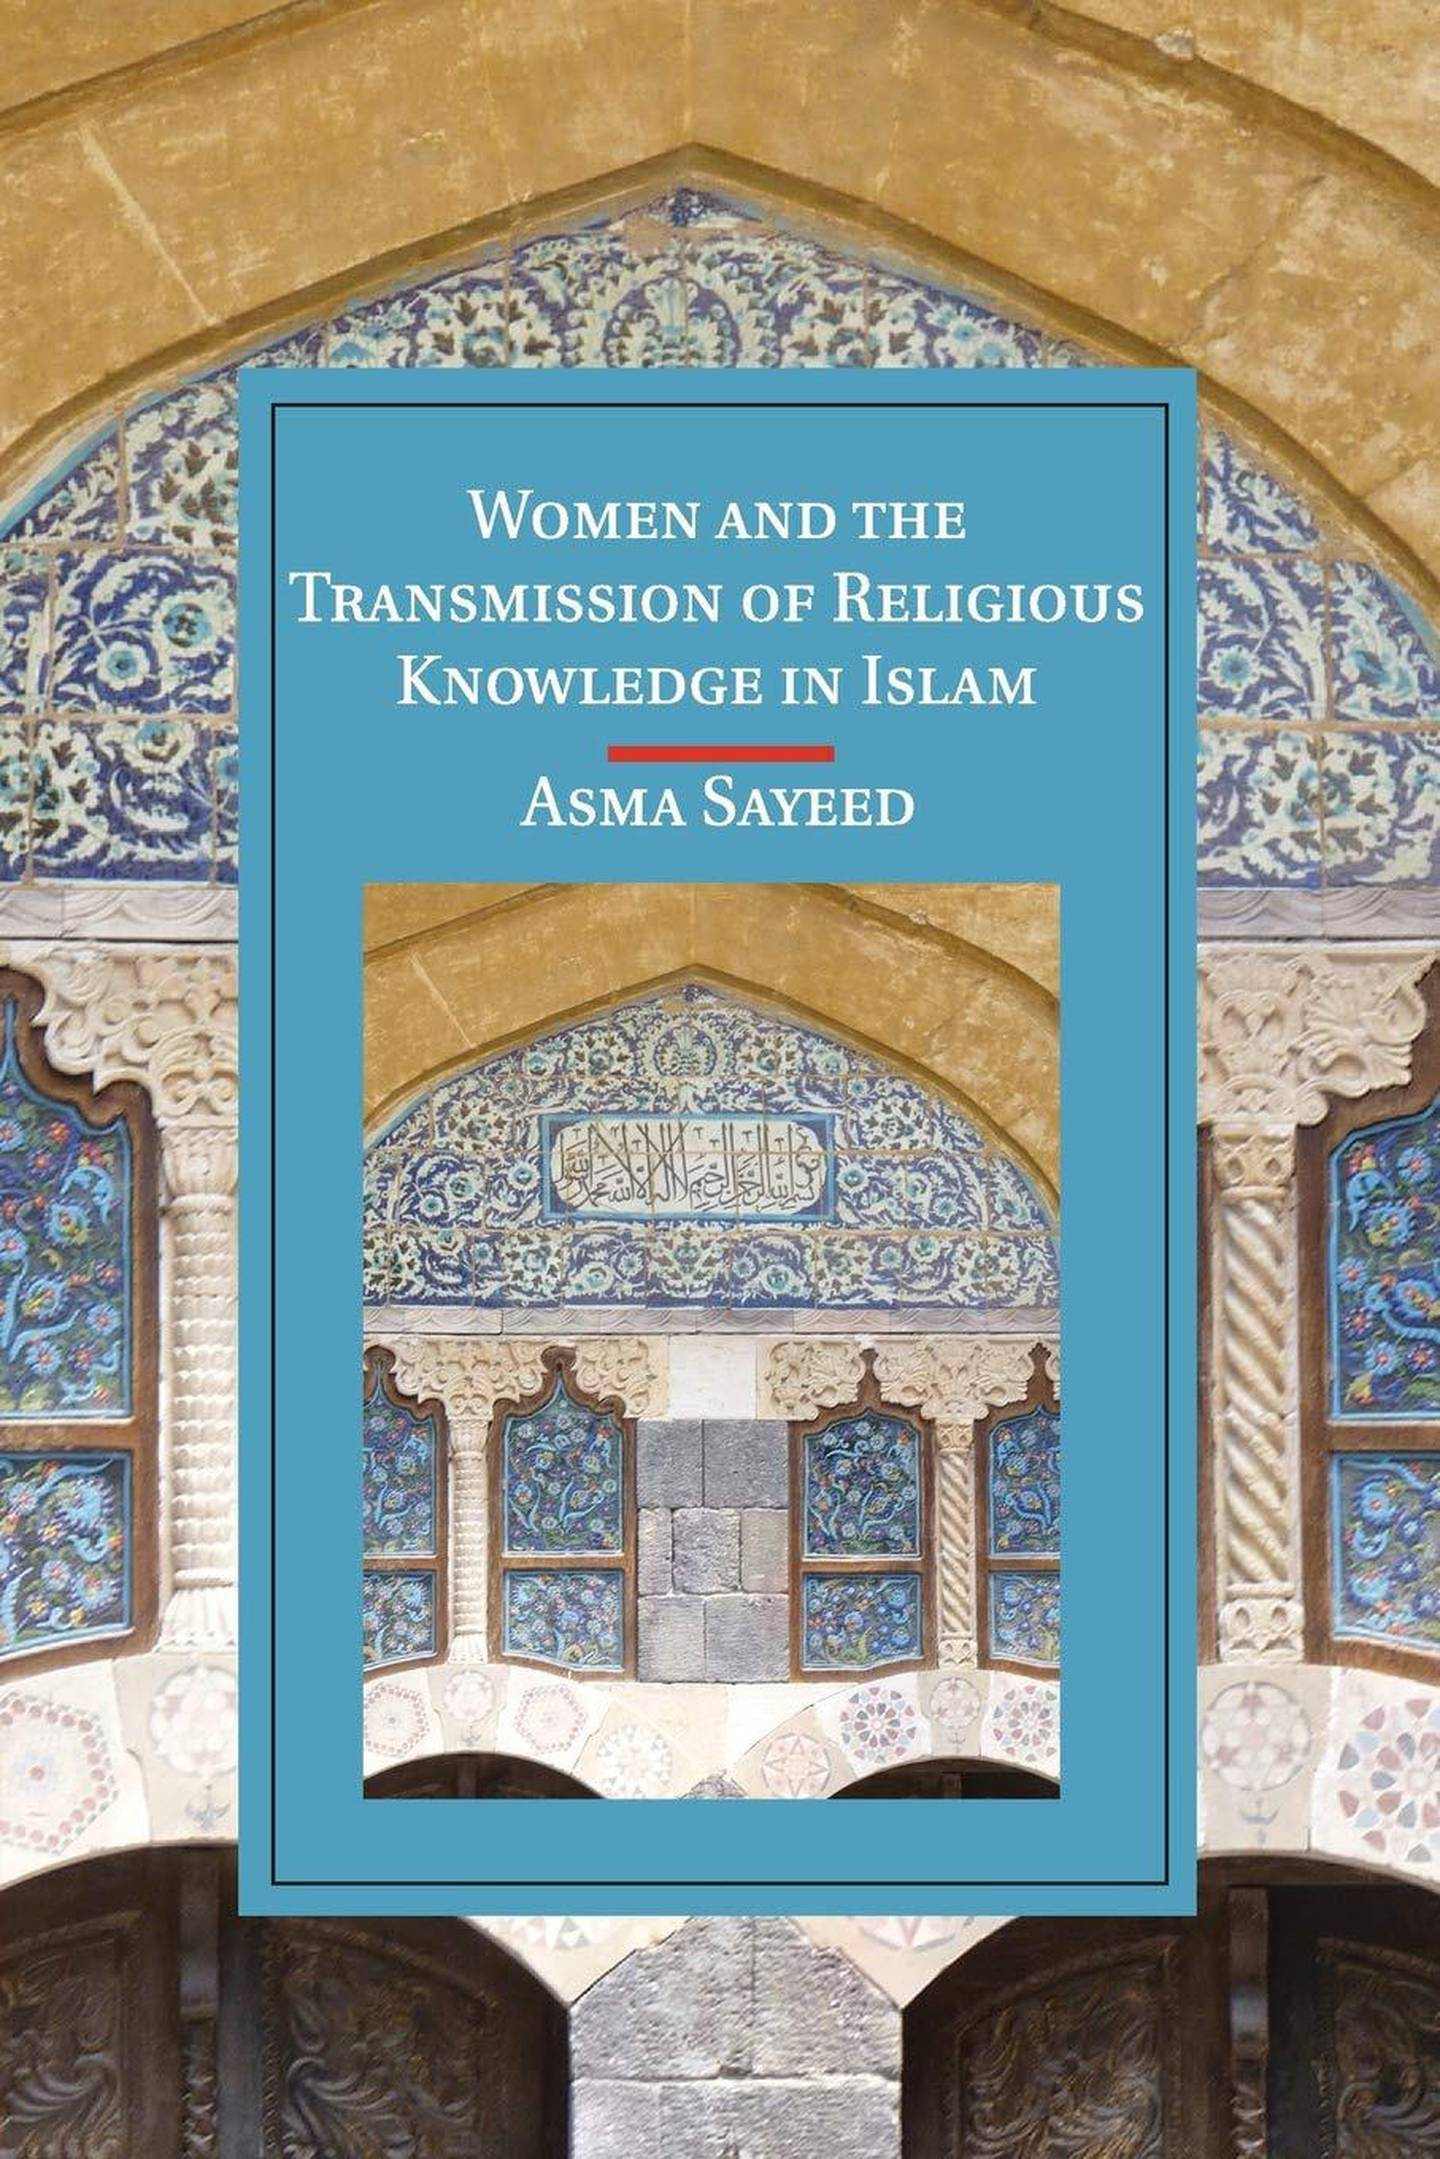 Women and the Transmission of Religious Knowledge in Islam by Asma Sayeed. Courtesy Cambridge University Press